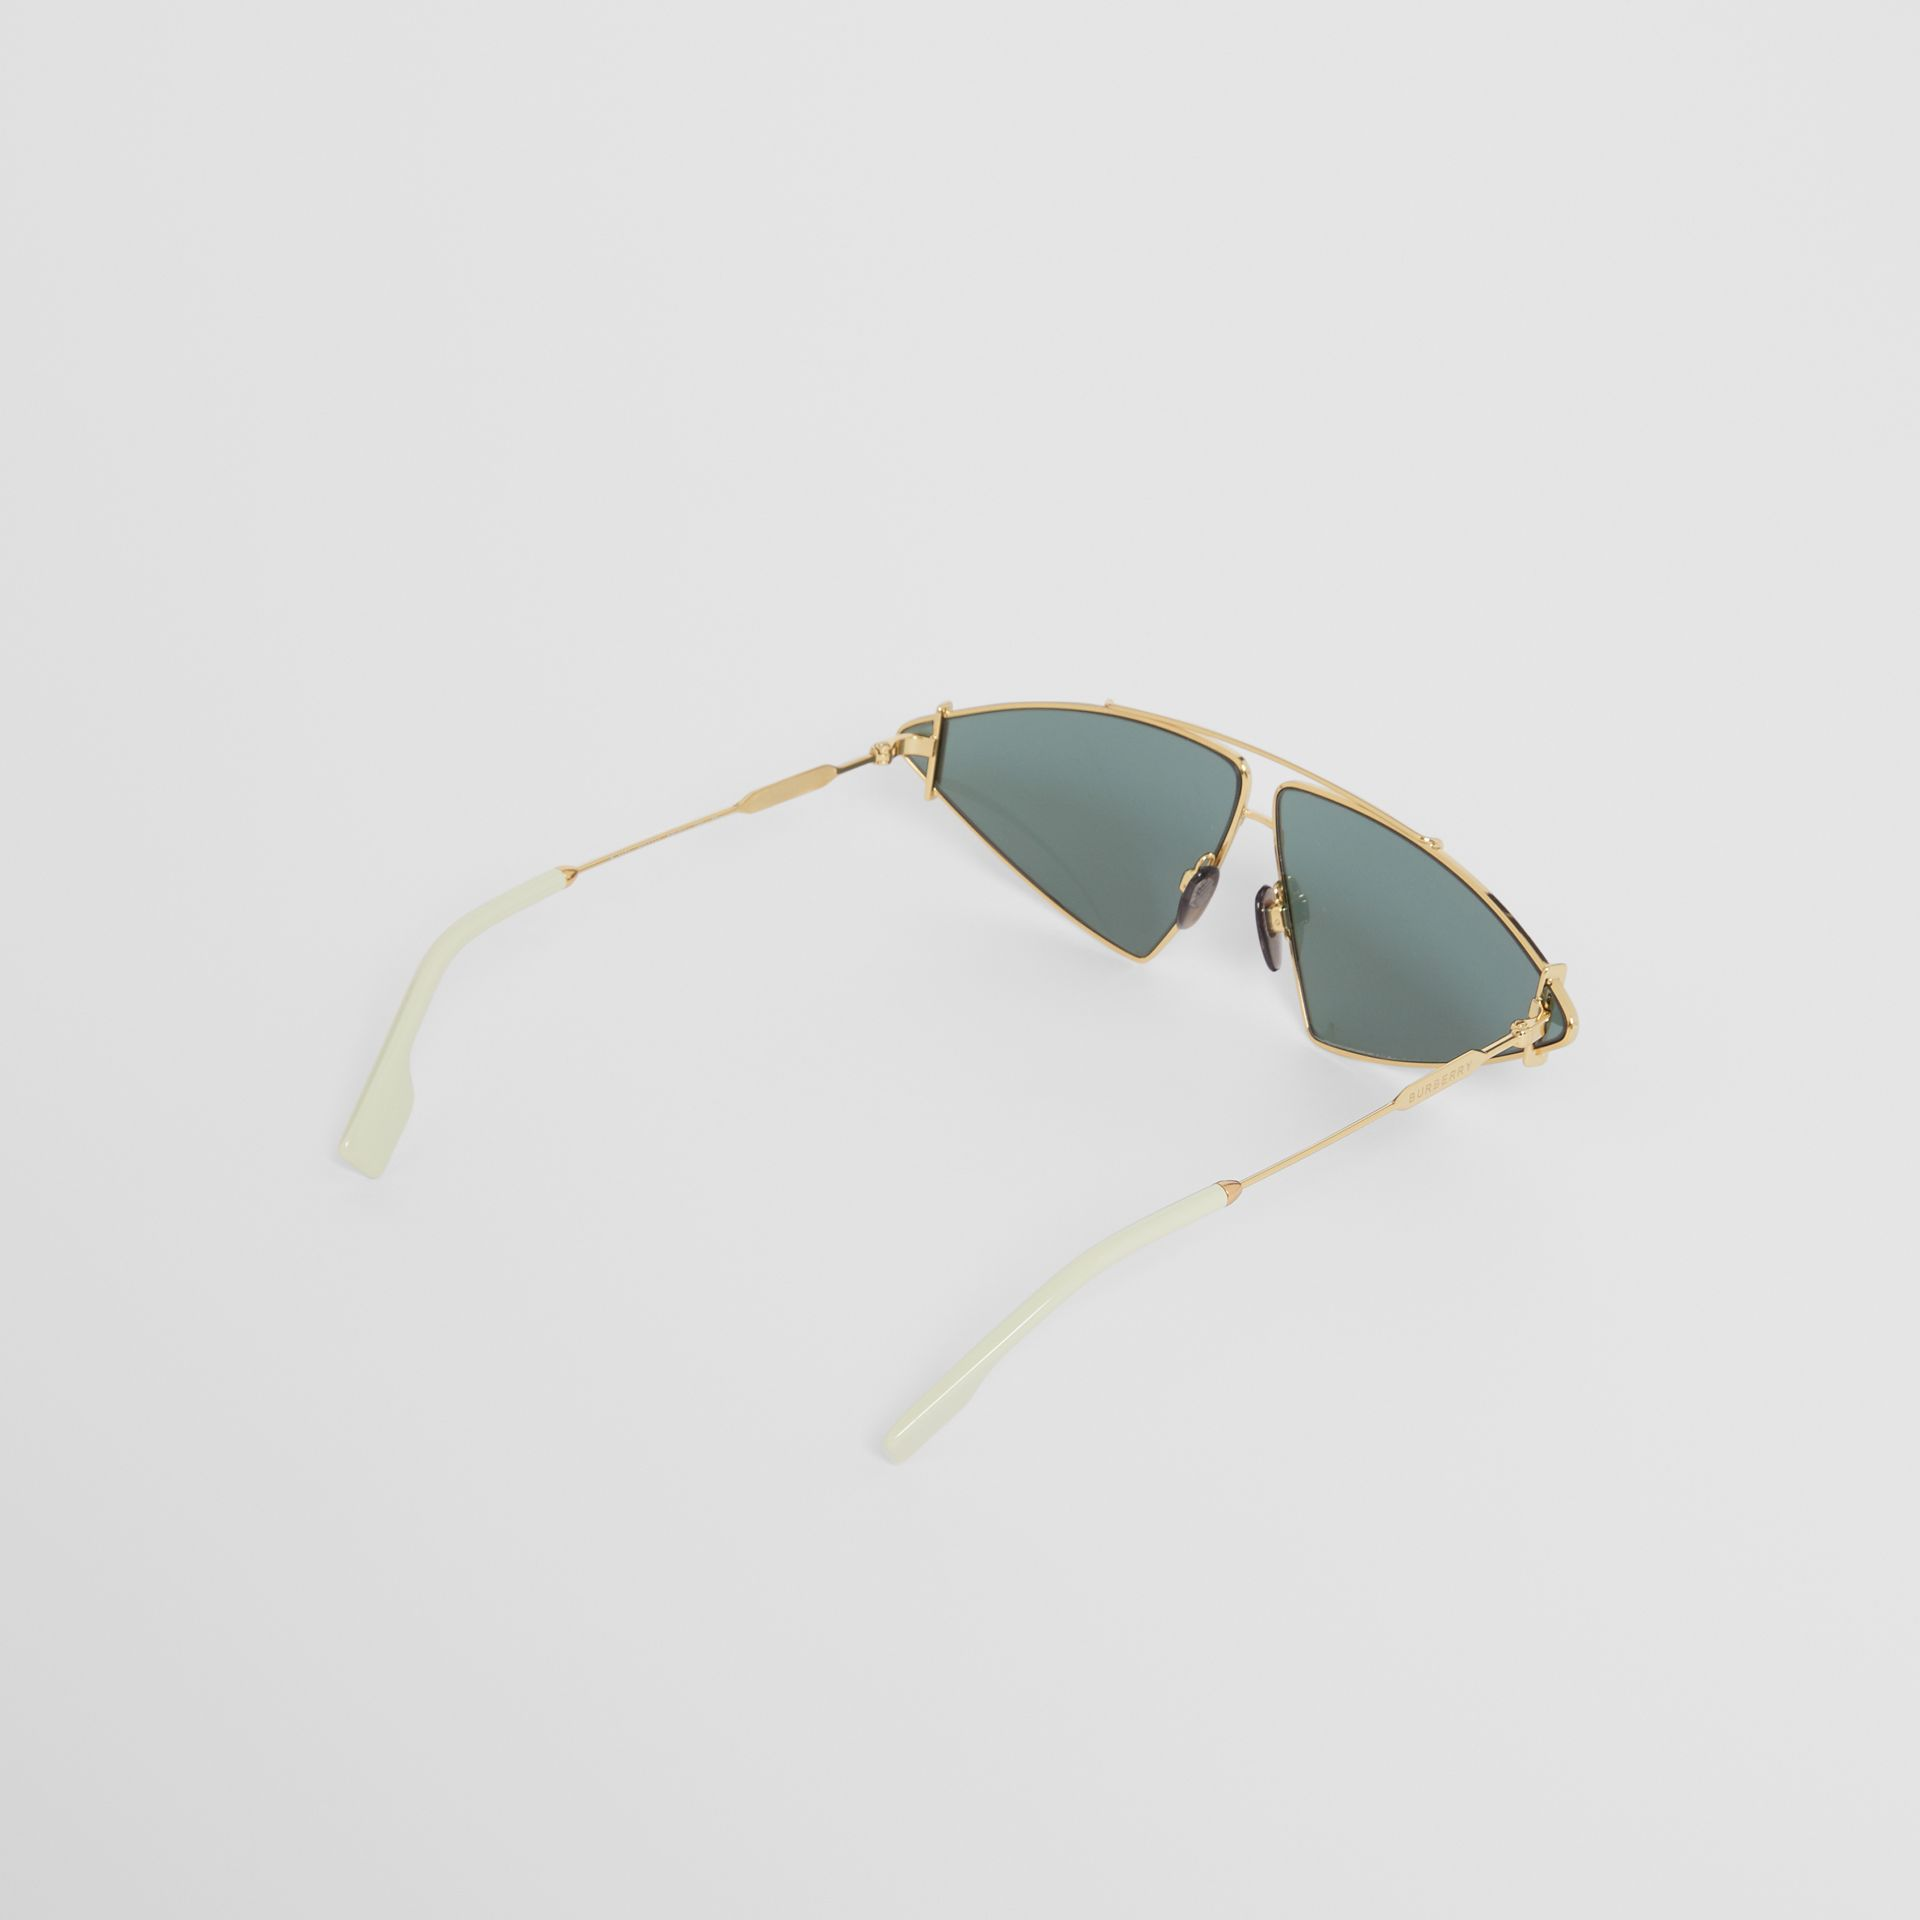 Gold-plated Triangular Frame Sunglasses in Pistachio - Women | Burberry - gallery image 4